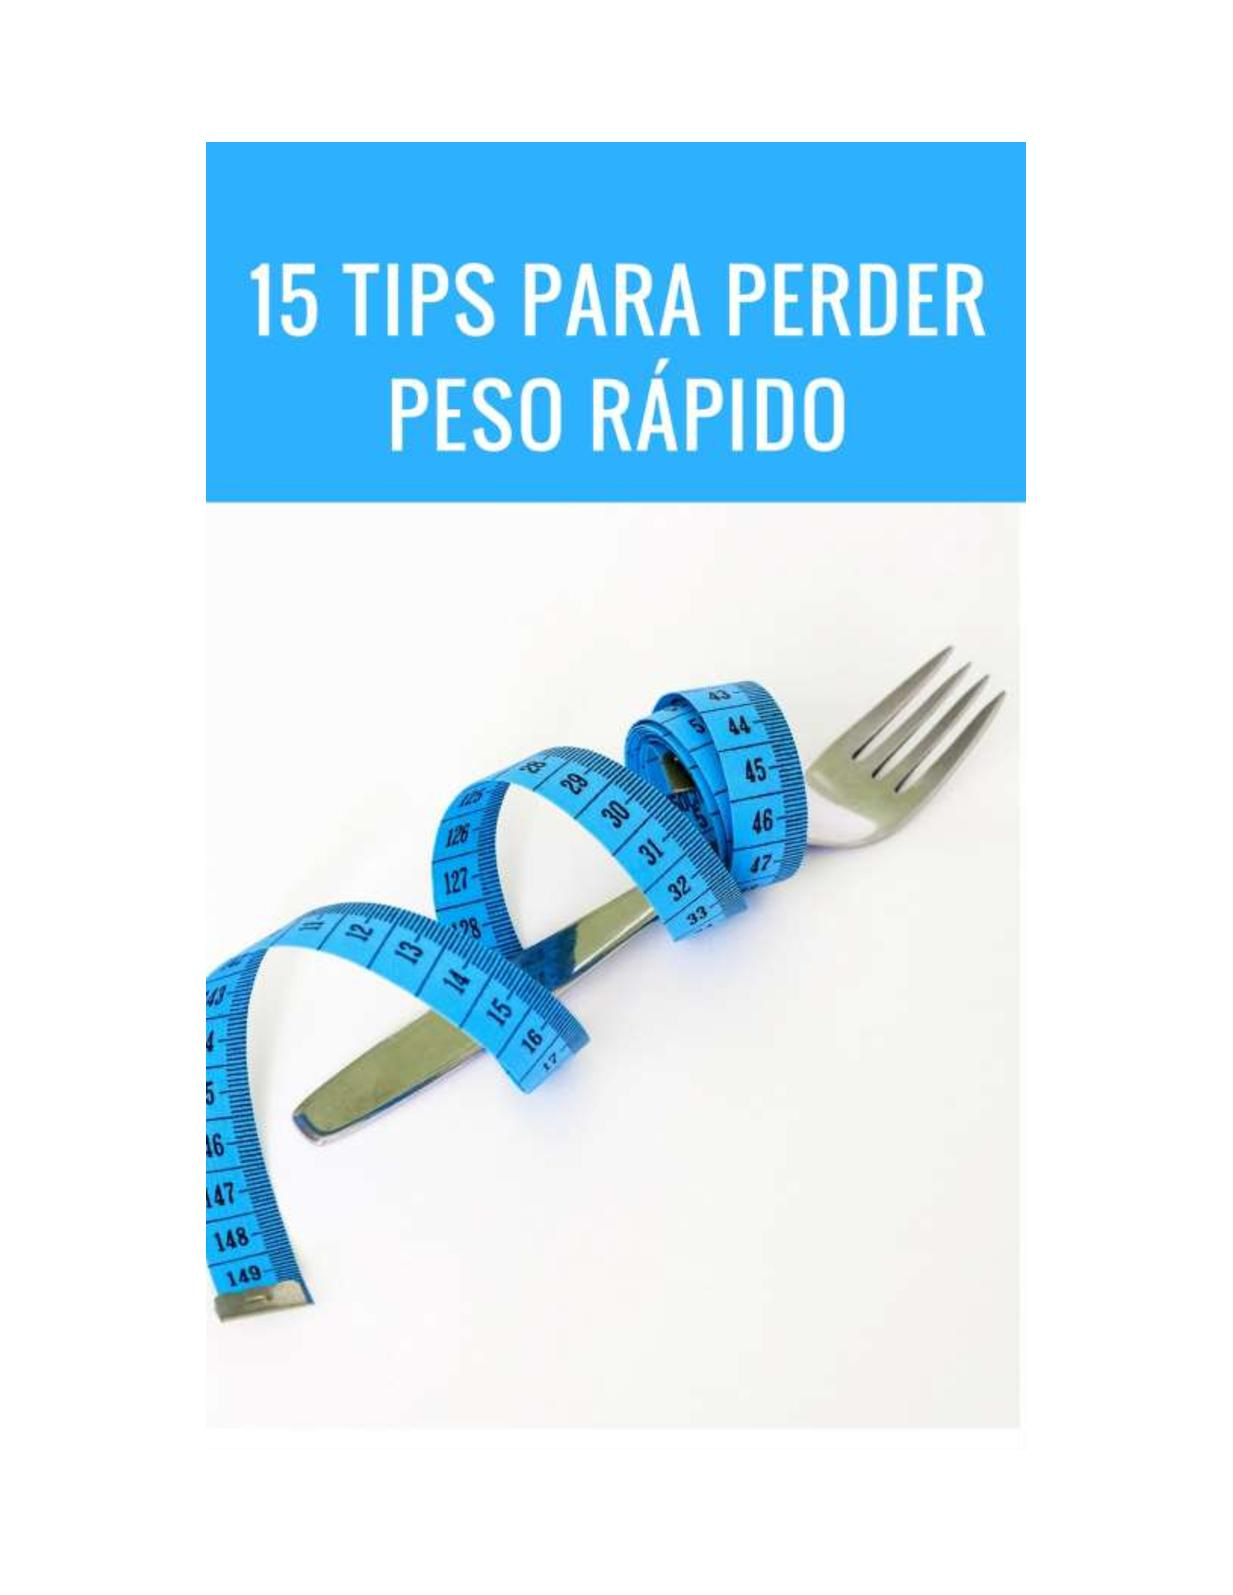 Plan de dieta de pérdida de peso indio simple